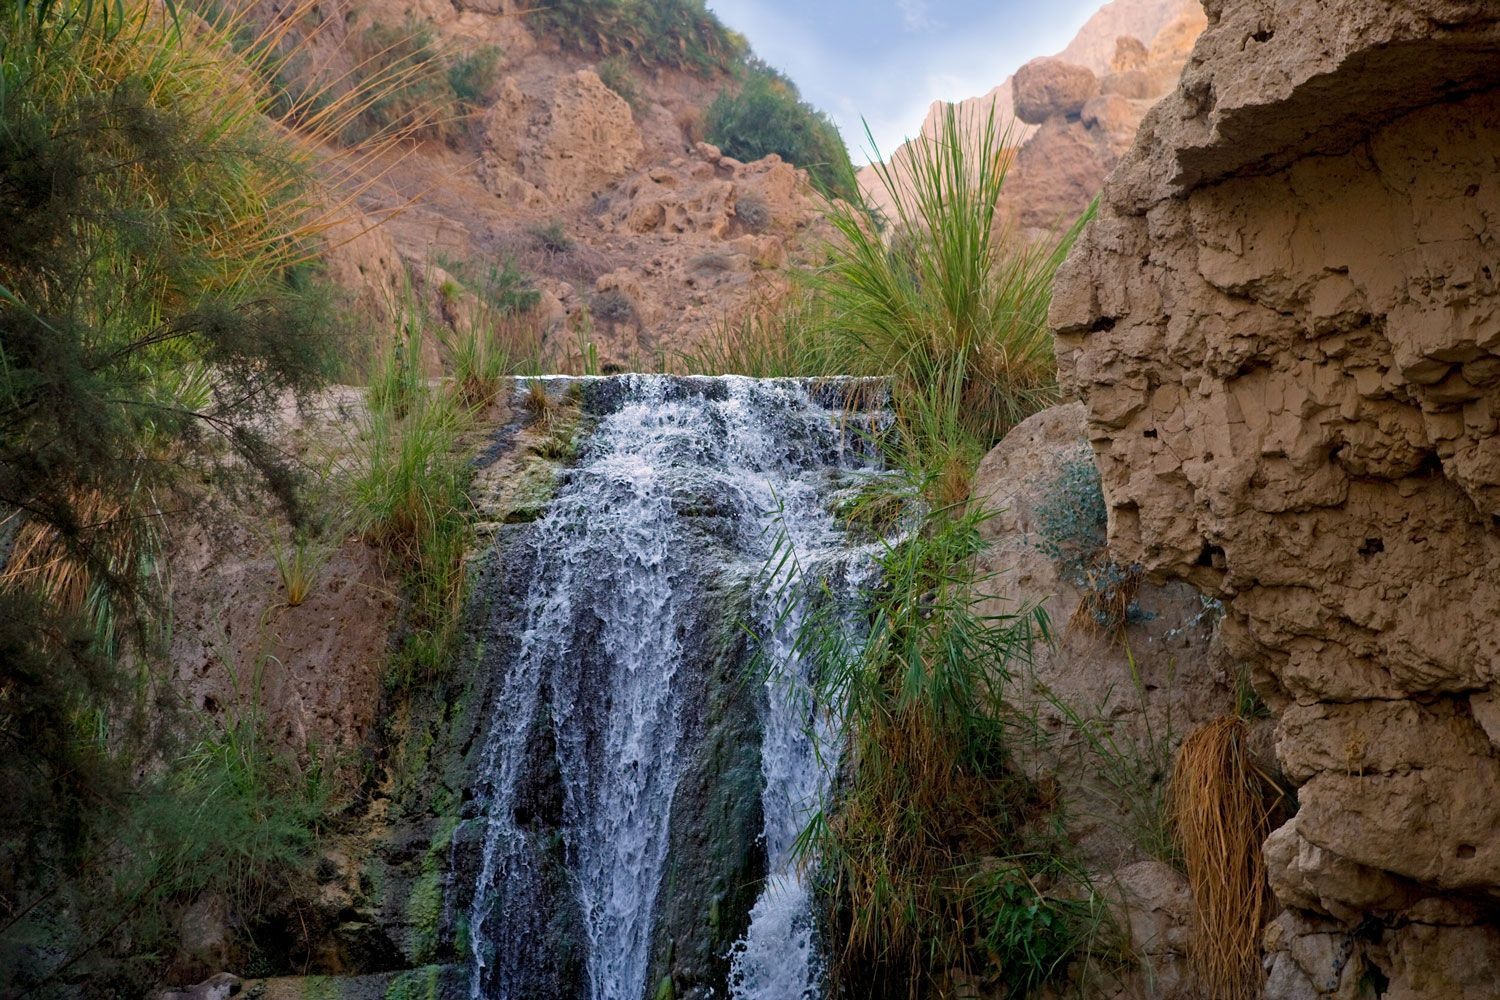 King David Waterfall in Natural Horizontal